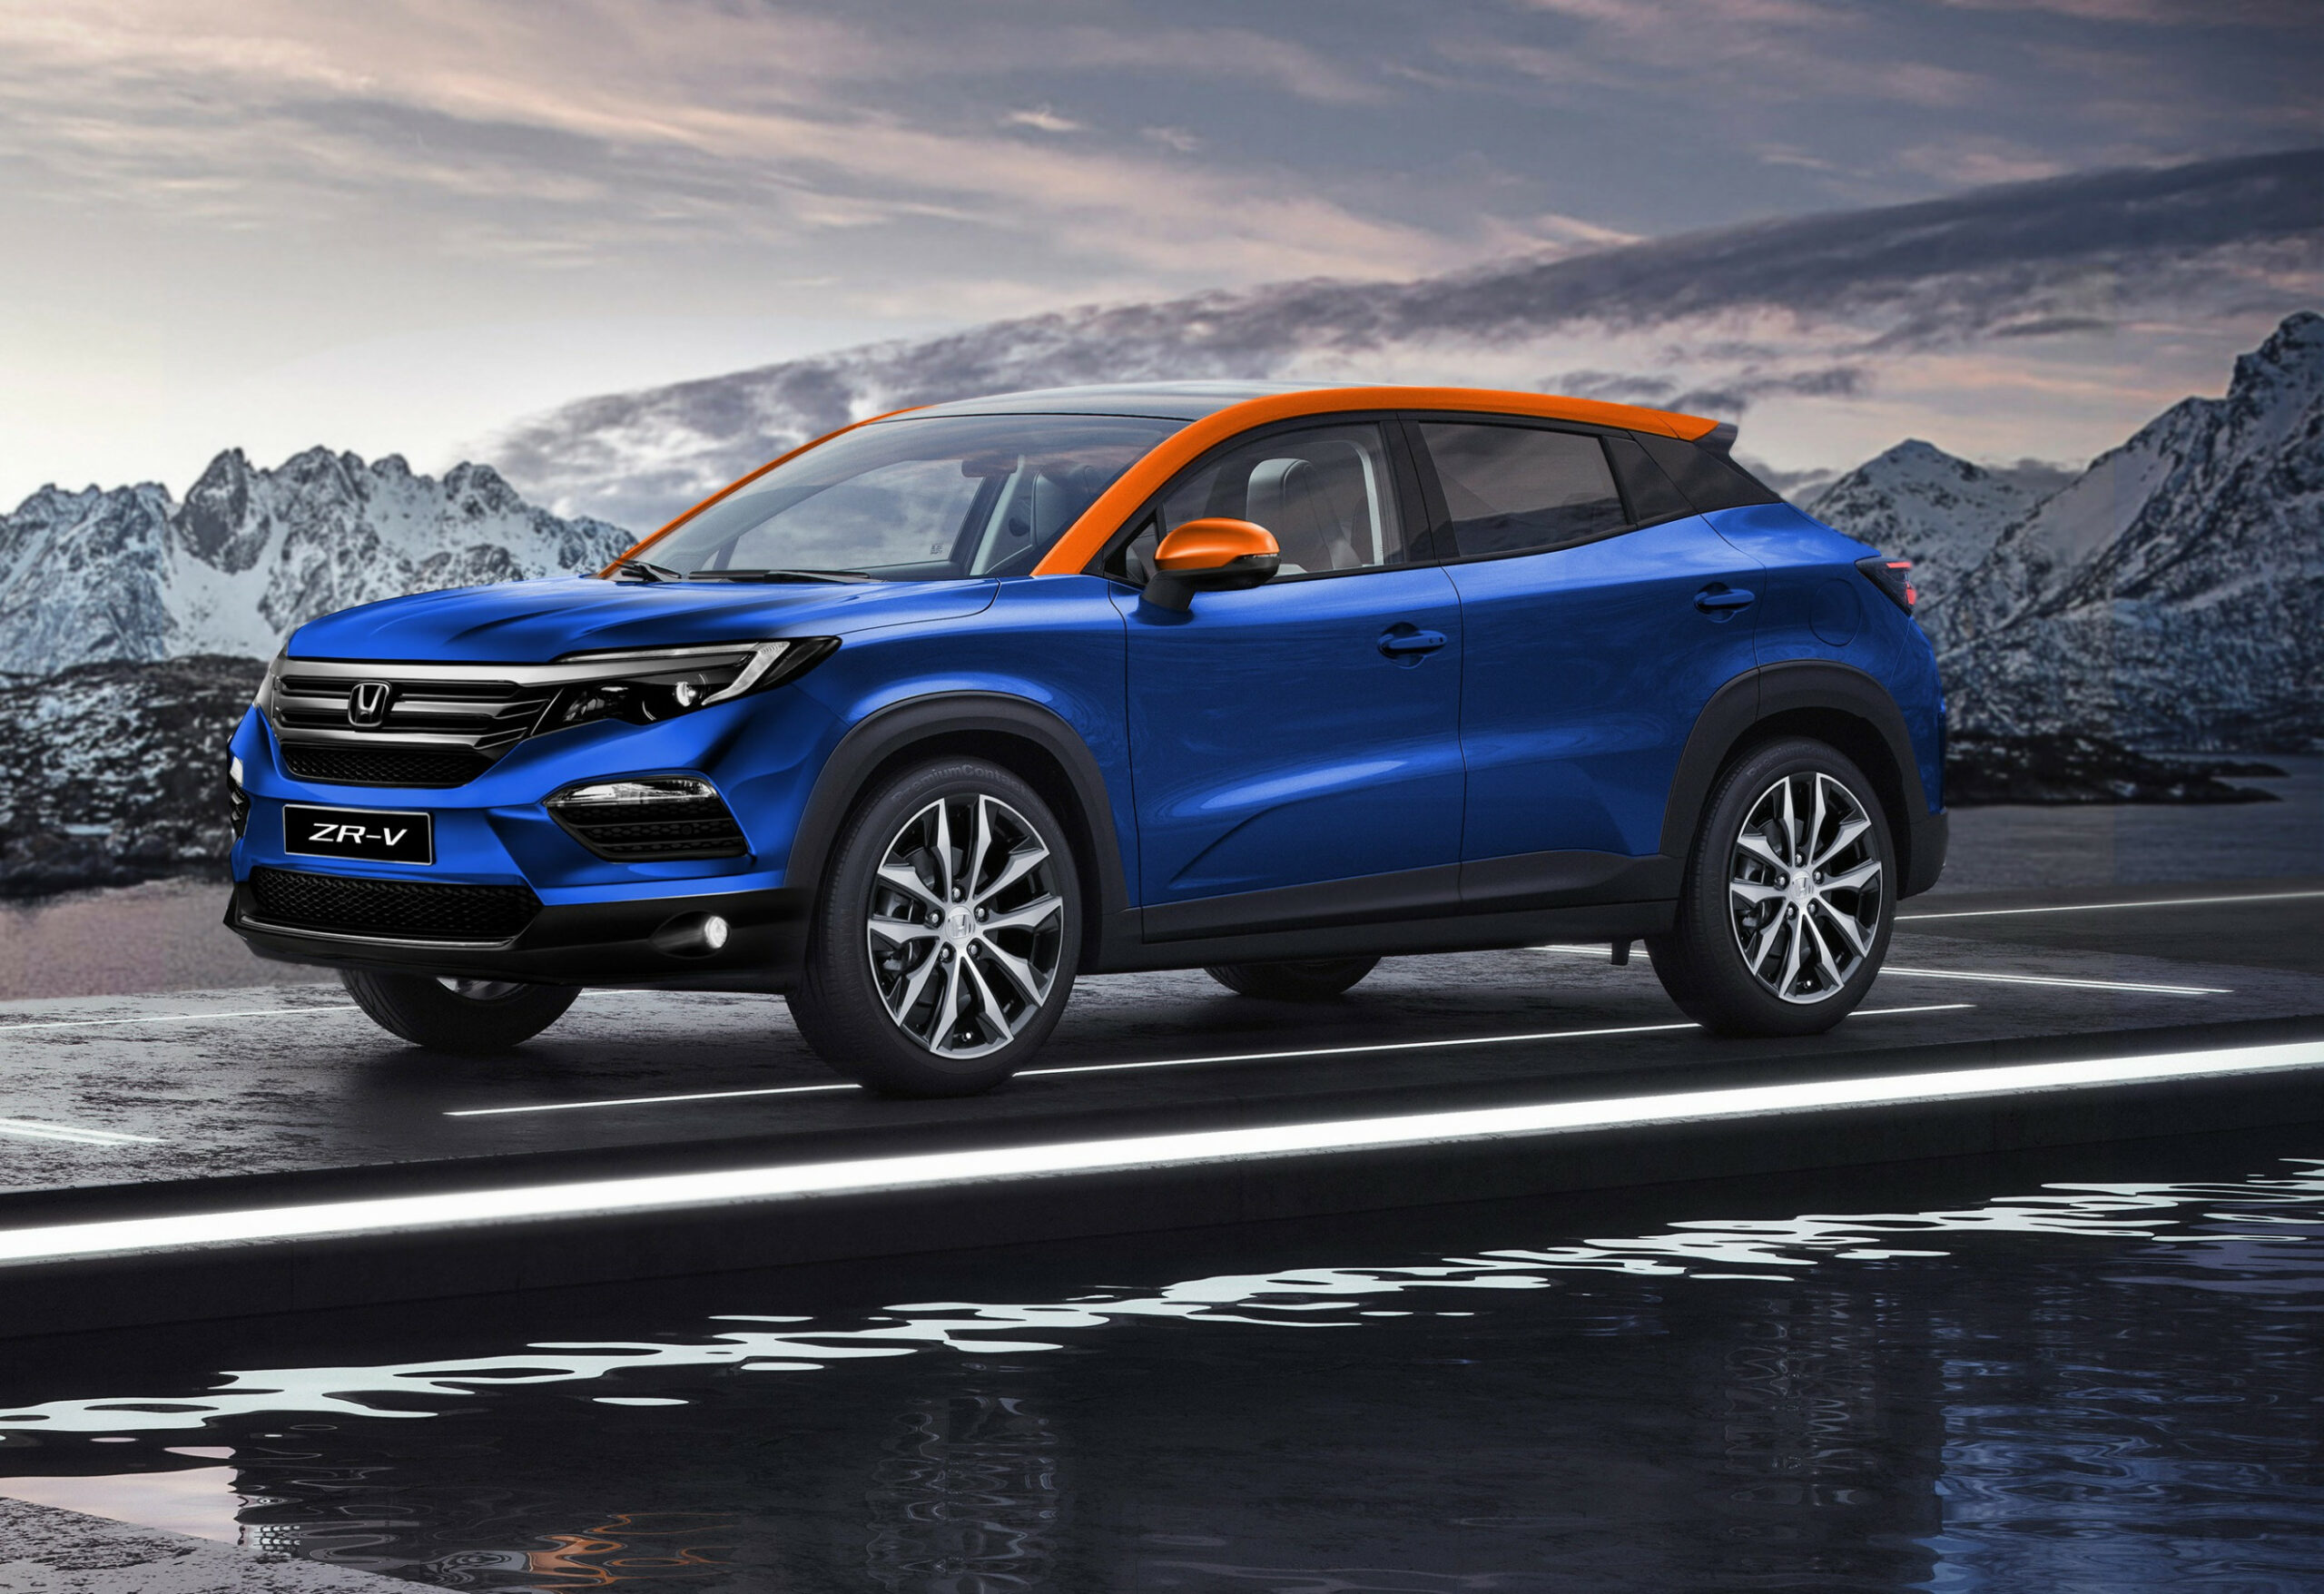 Concept When Will 2022 Honda Crv Be Released